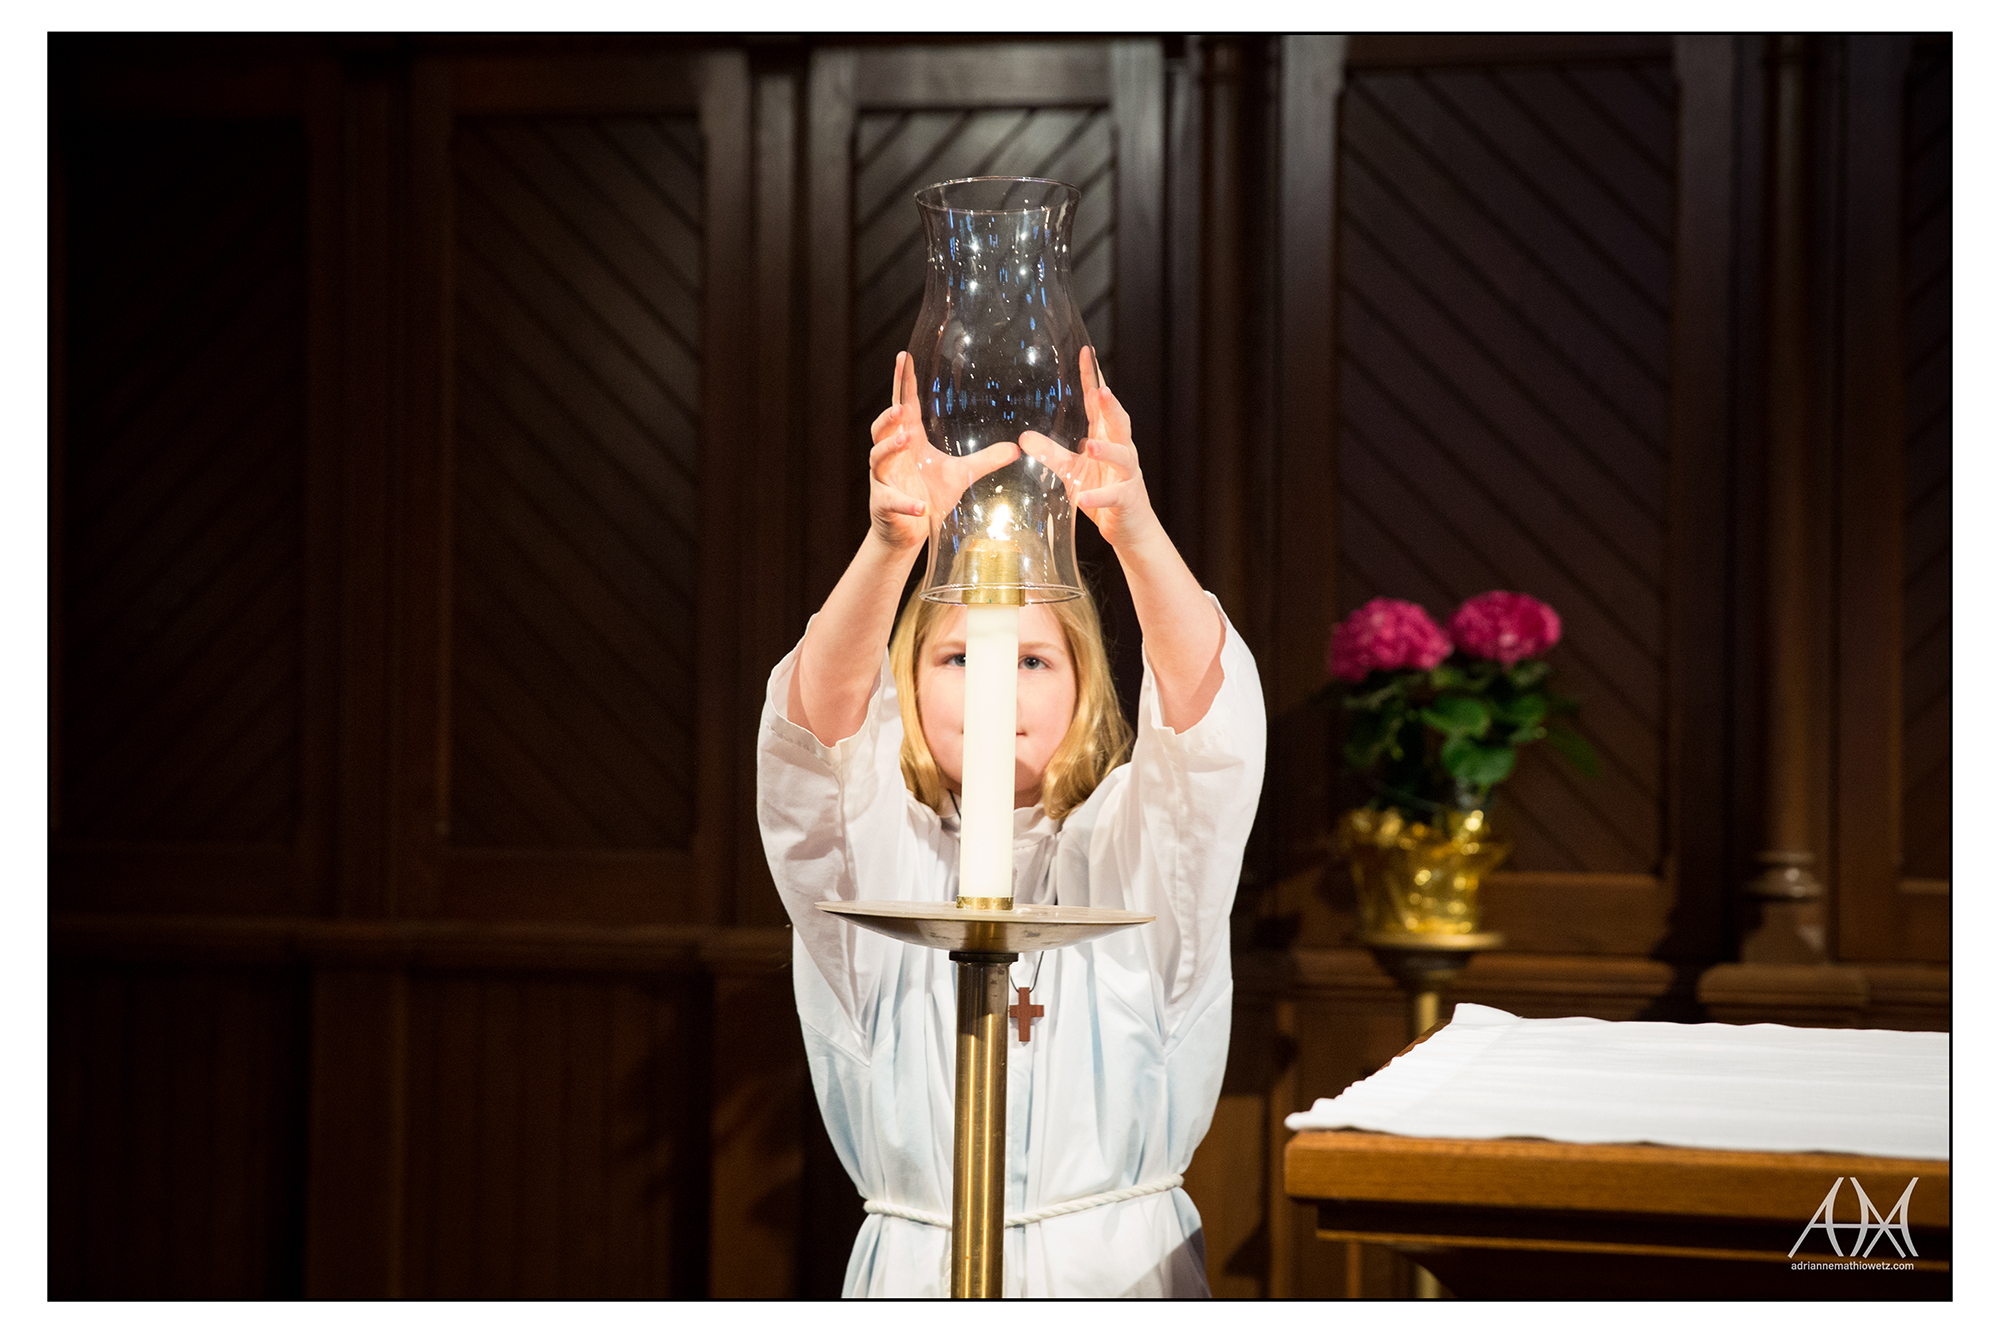 Communion-03 copy.jpg